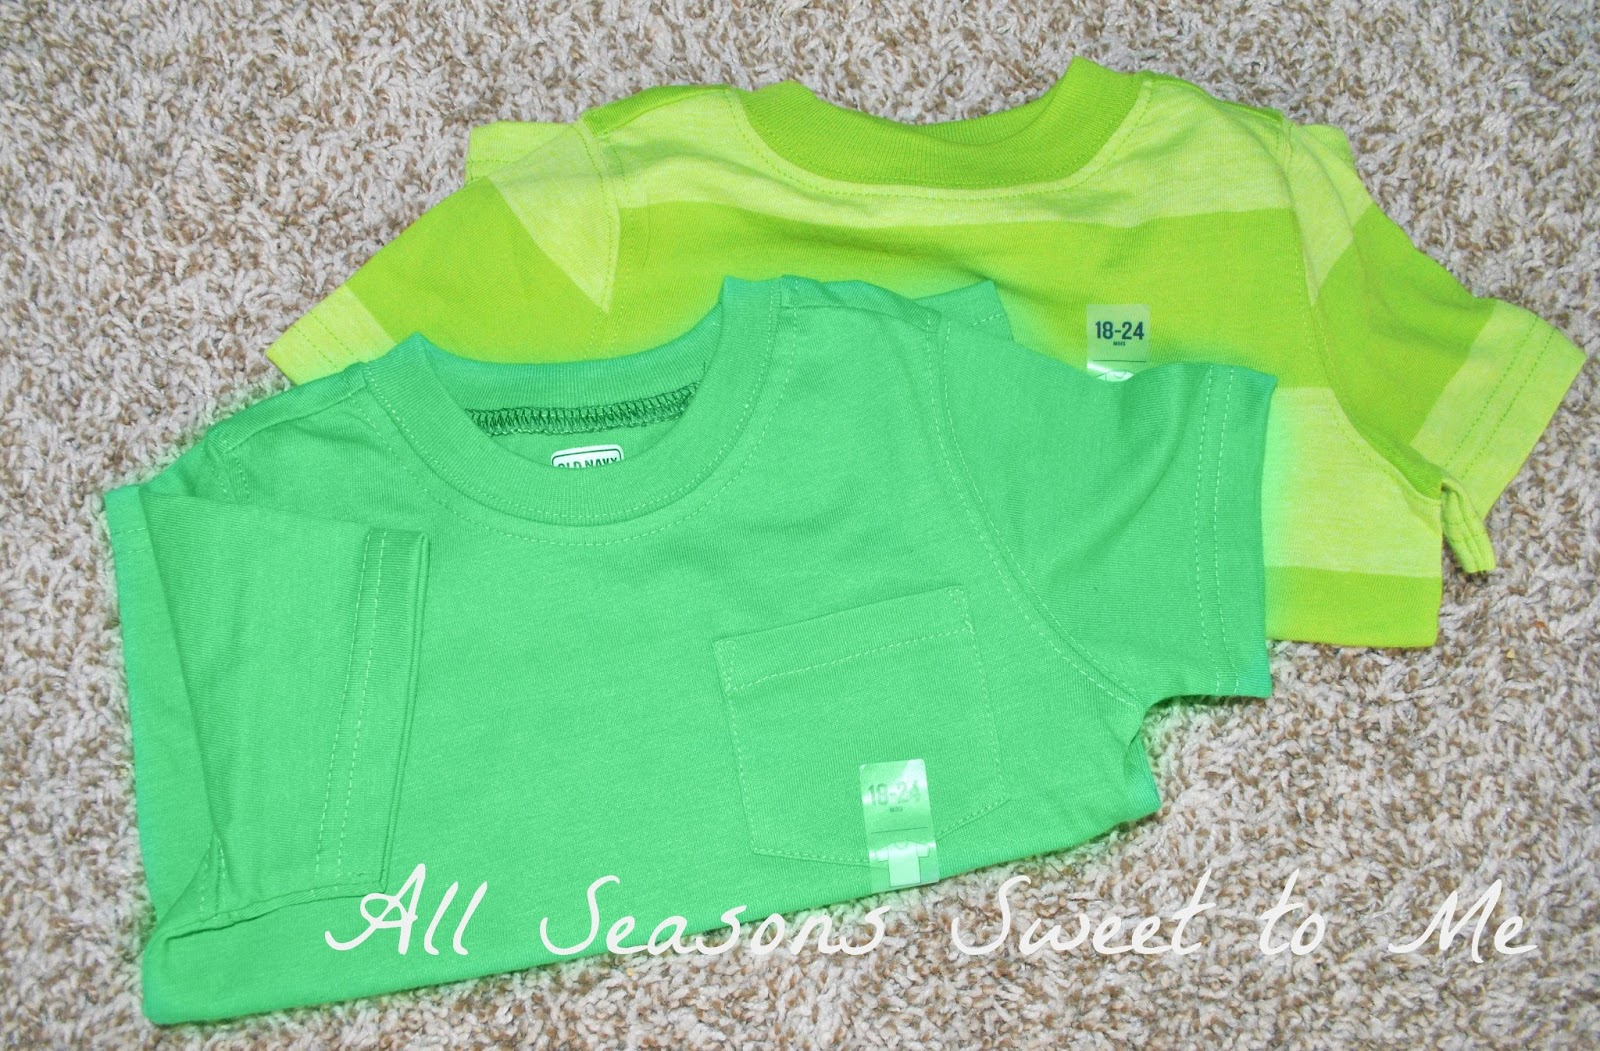 f2846f673 ... one must have something green to wear on St. Patrick's Day or risk  getting pinched! I found my little guy two new shirts at Old Navy for just  $4 each!